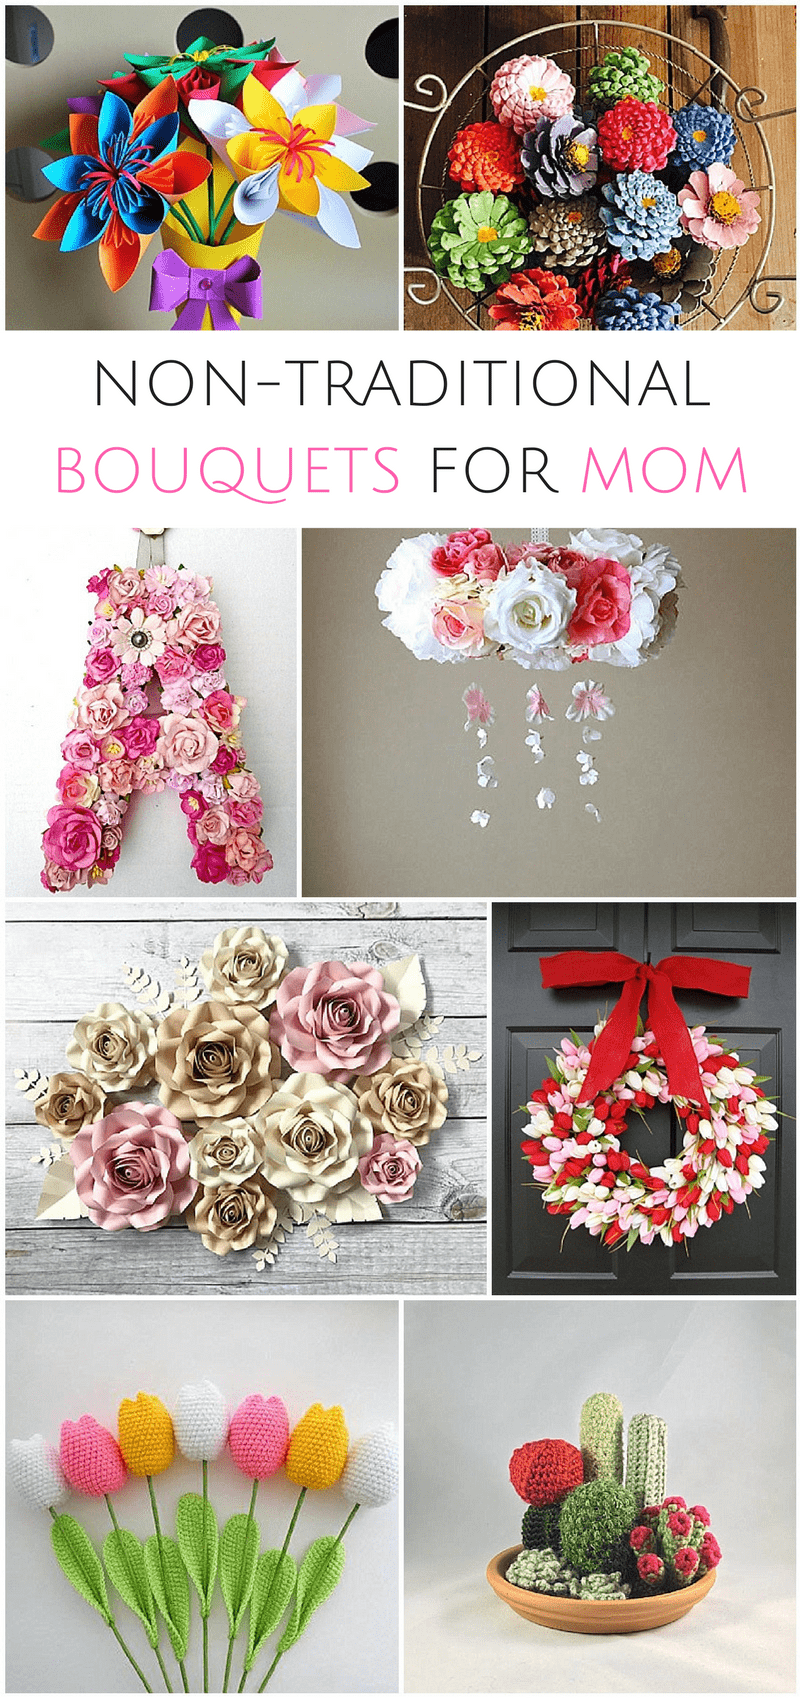 10 non traditional flower bouquets for mothers day hello wonderful disclosure some of the links in the post above are affiliate links this means if you click on the link and purchase the item we will receive a small izmirmasajfo